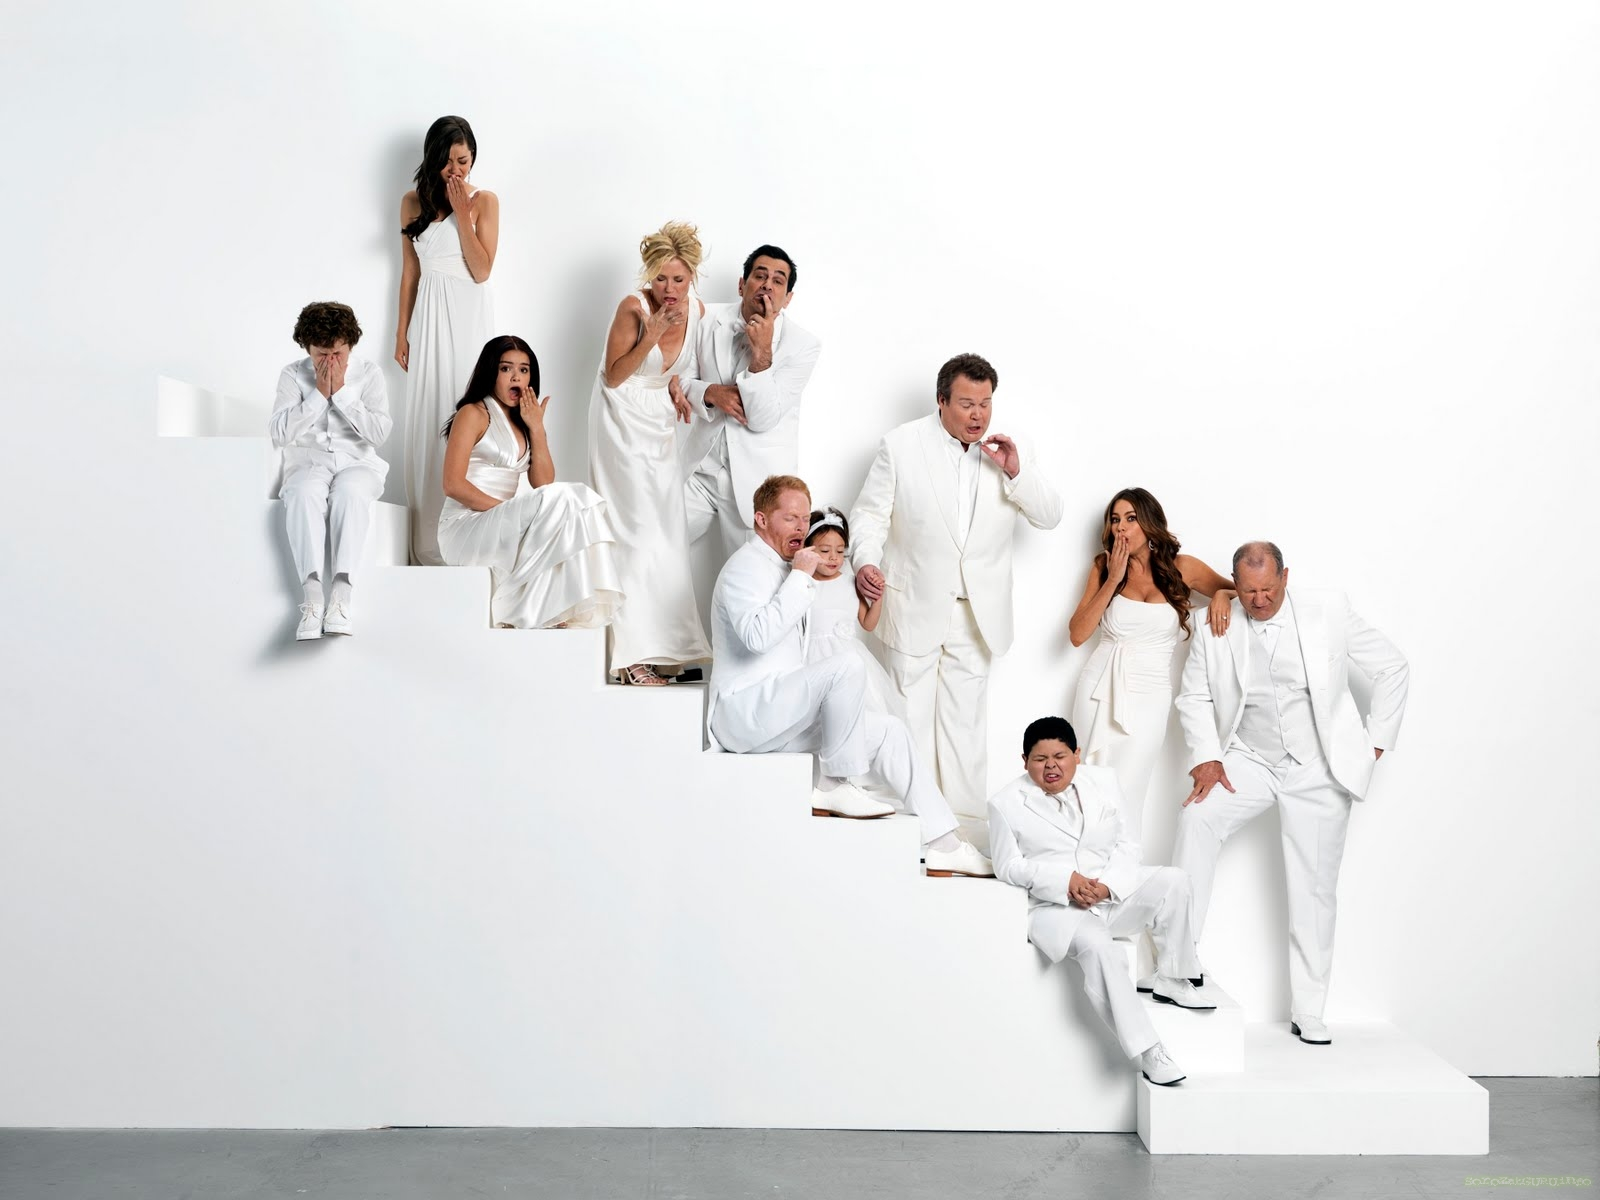 modern family wallpaper photo - photo #12